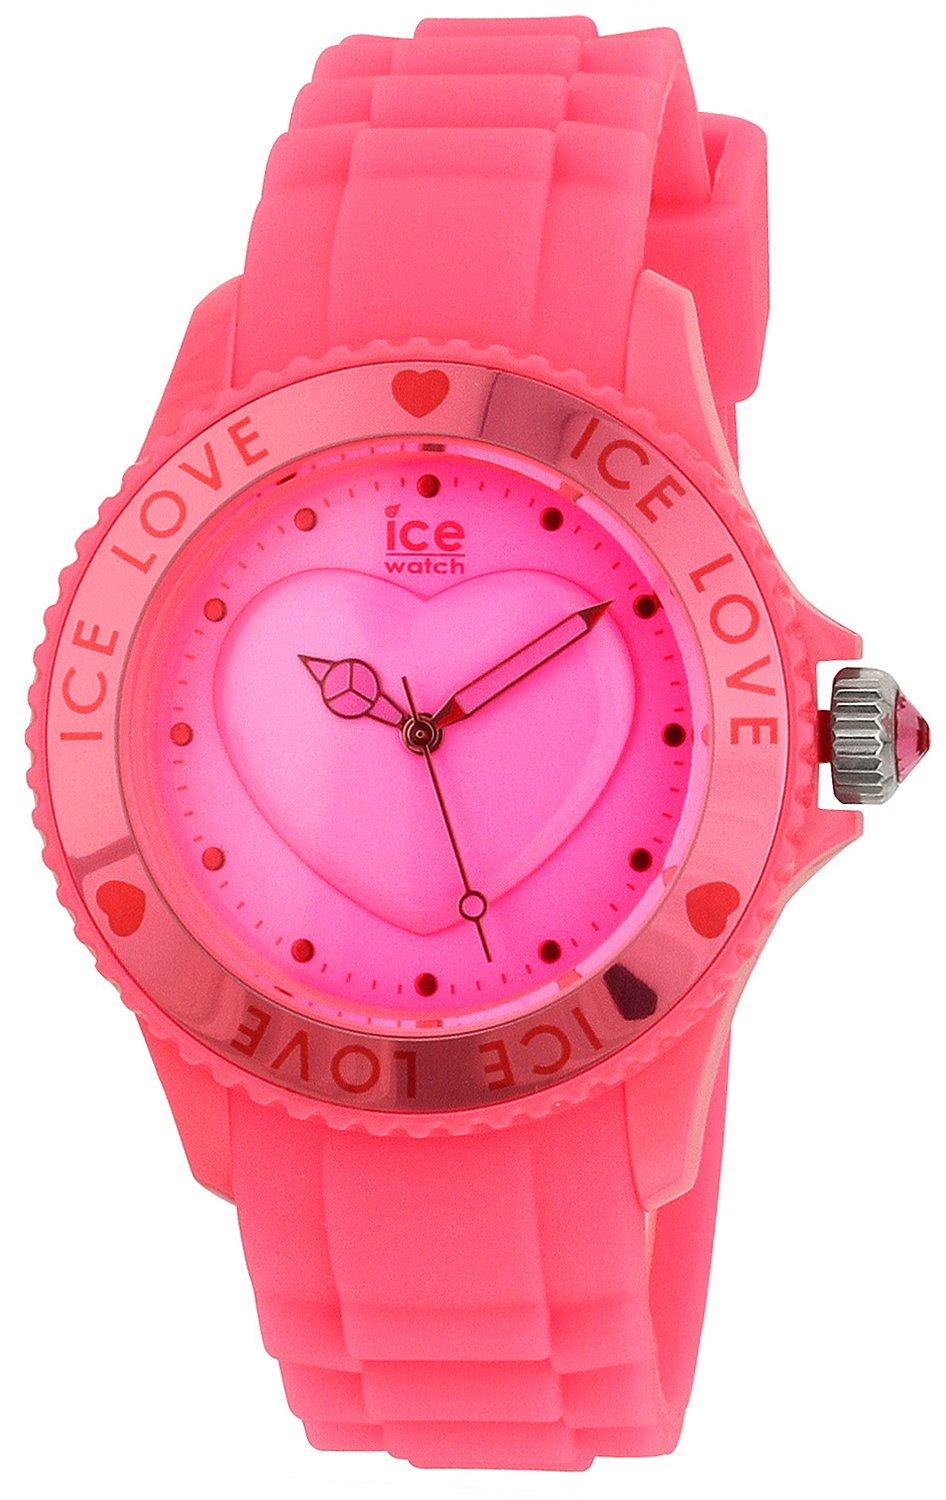 Ice Watch Love LO.PK.U.S.10 Heart Pink Plastic Dial